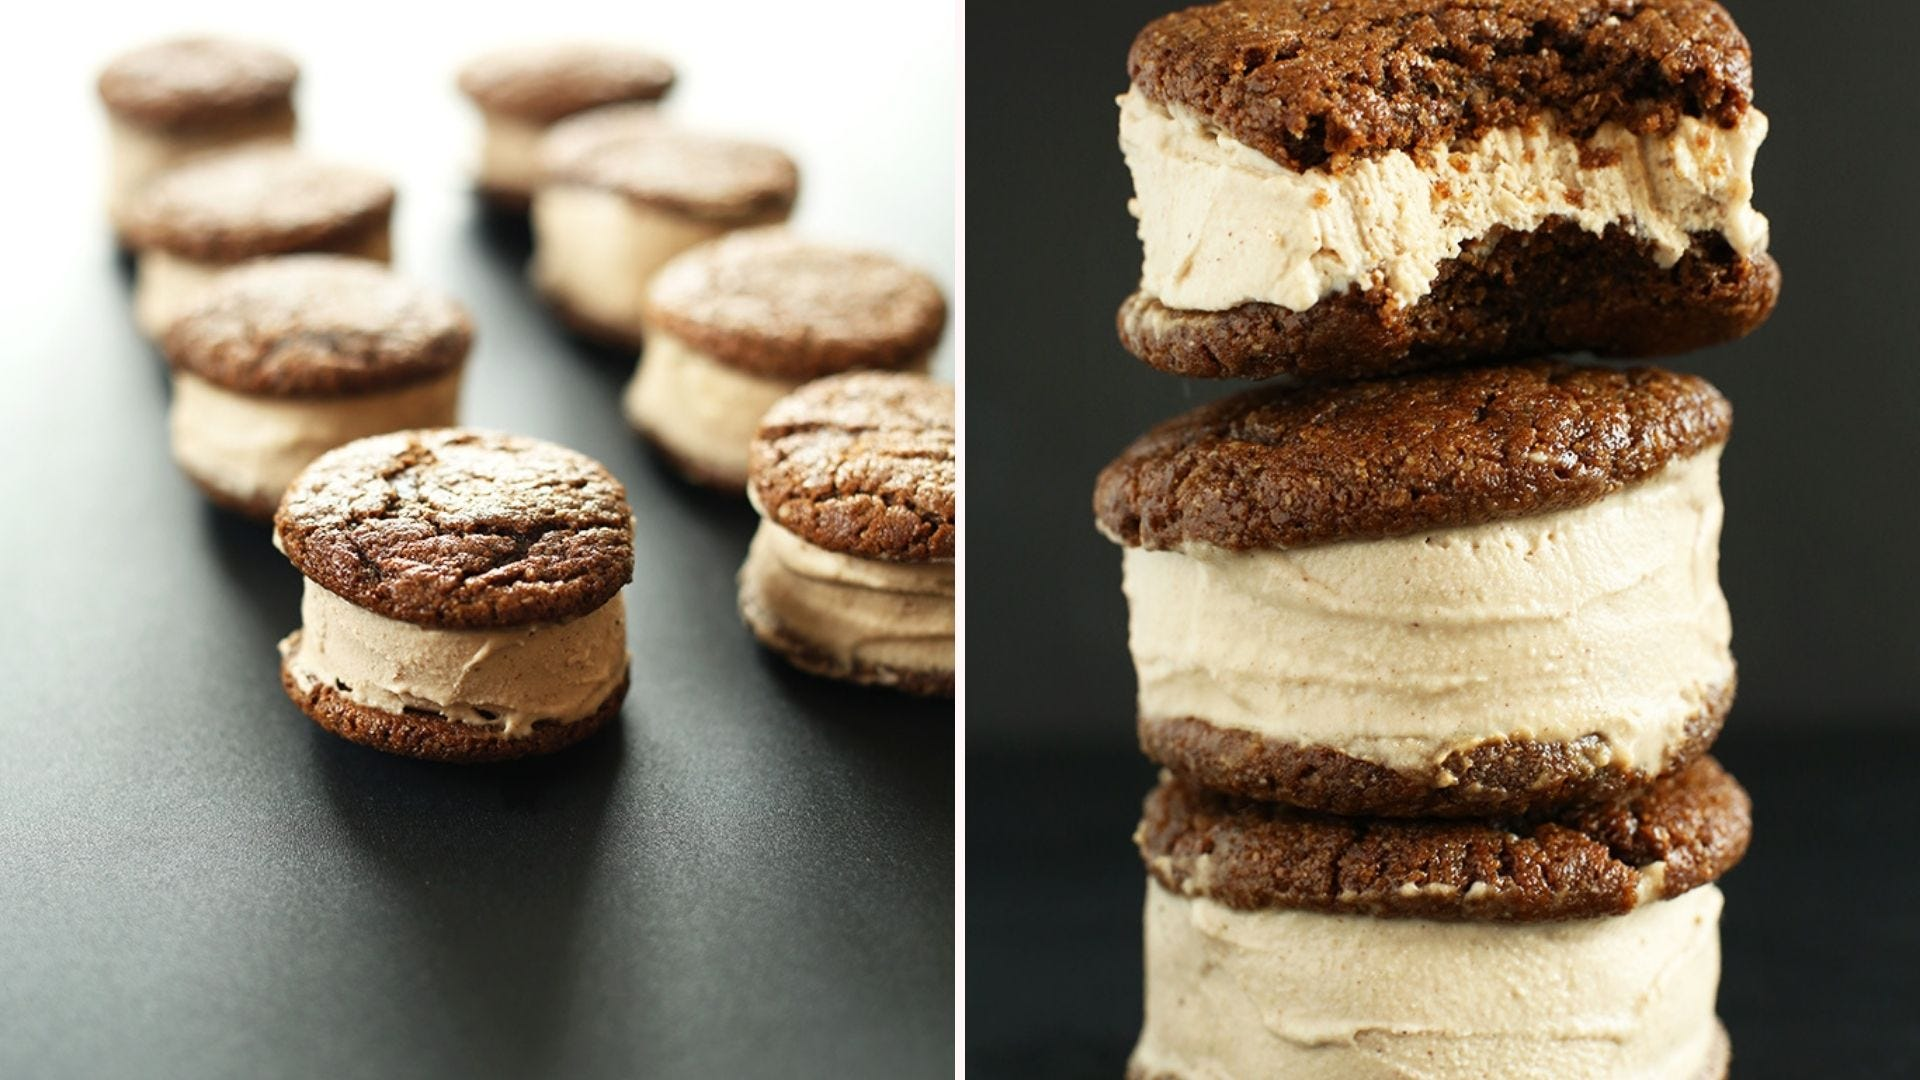 Several ginger ice cream sandwiches lined up; three sandwiches stacked with a bite out of the top one